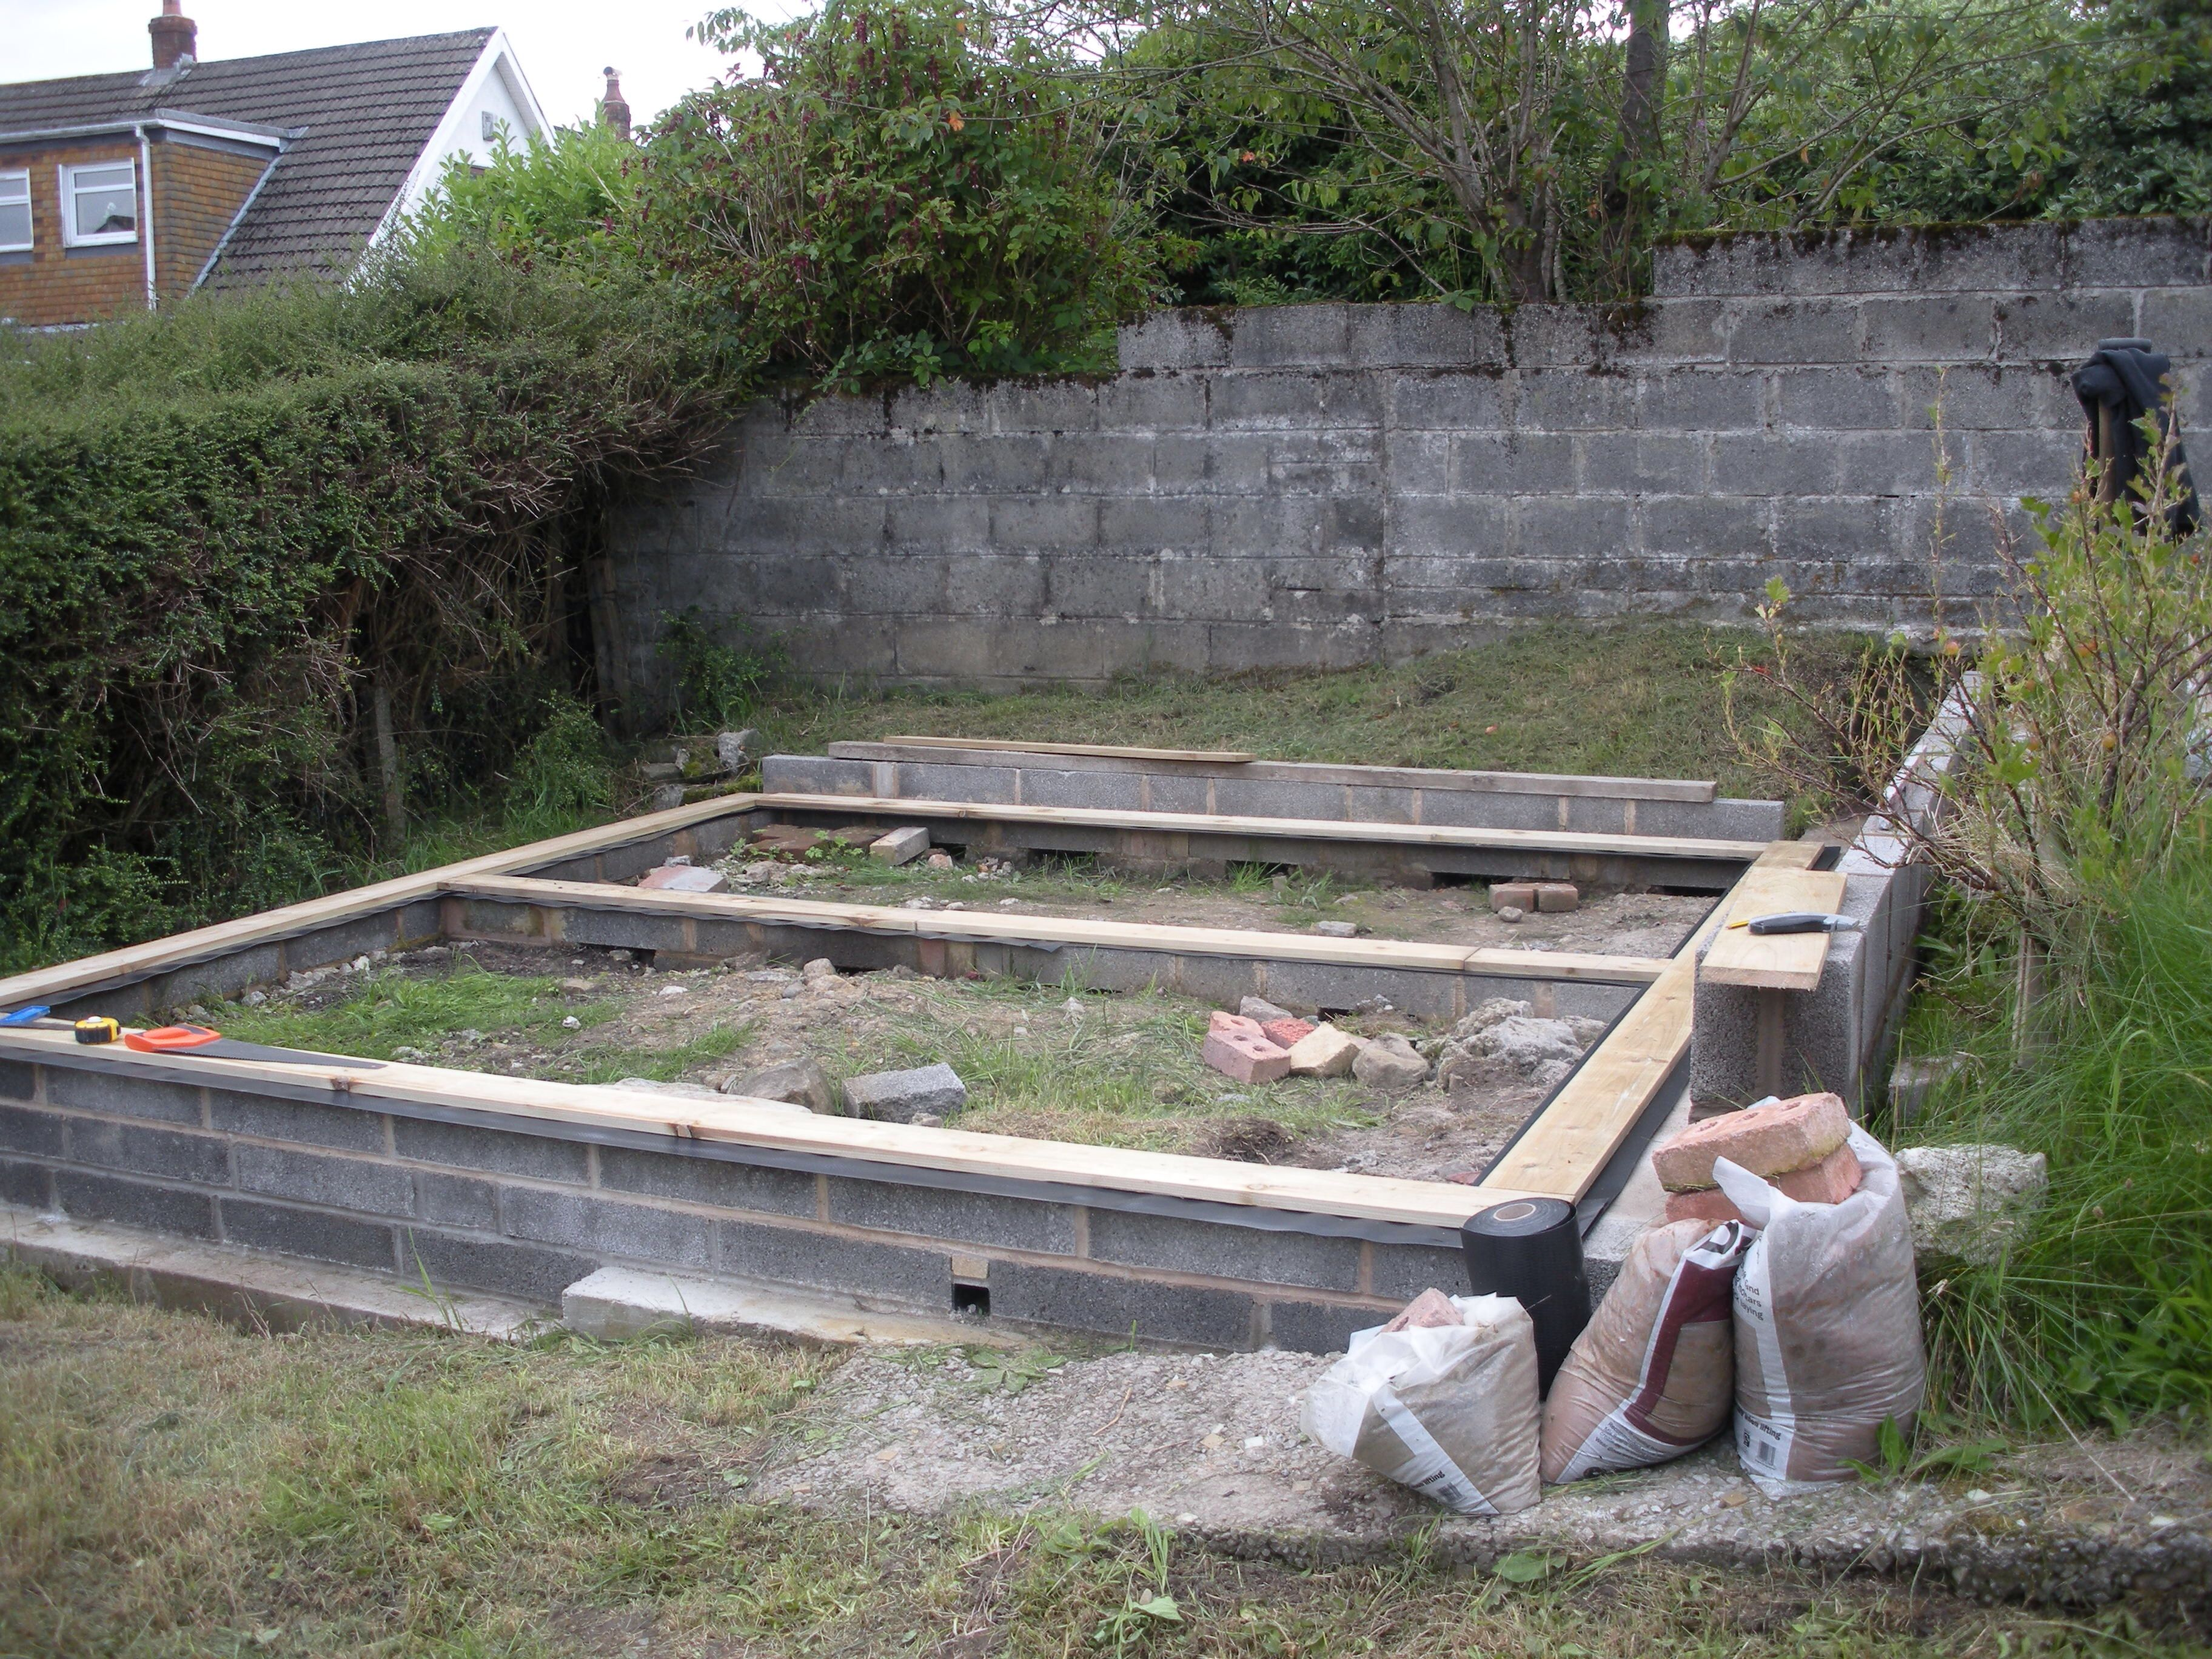 12x12 Shed Base Uneven Ground Levelled Using Concrete Strip Foundations Sole Plate From Treated Timber Wi Backyard Storage Sheds Free Shed Plans Shed Plans